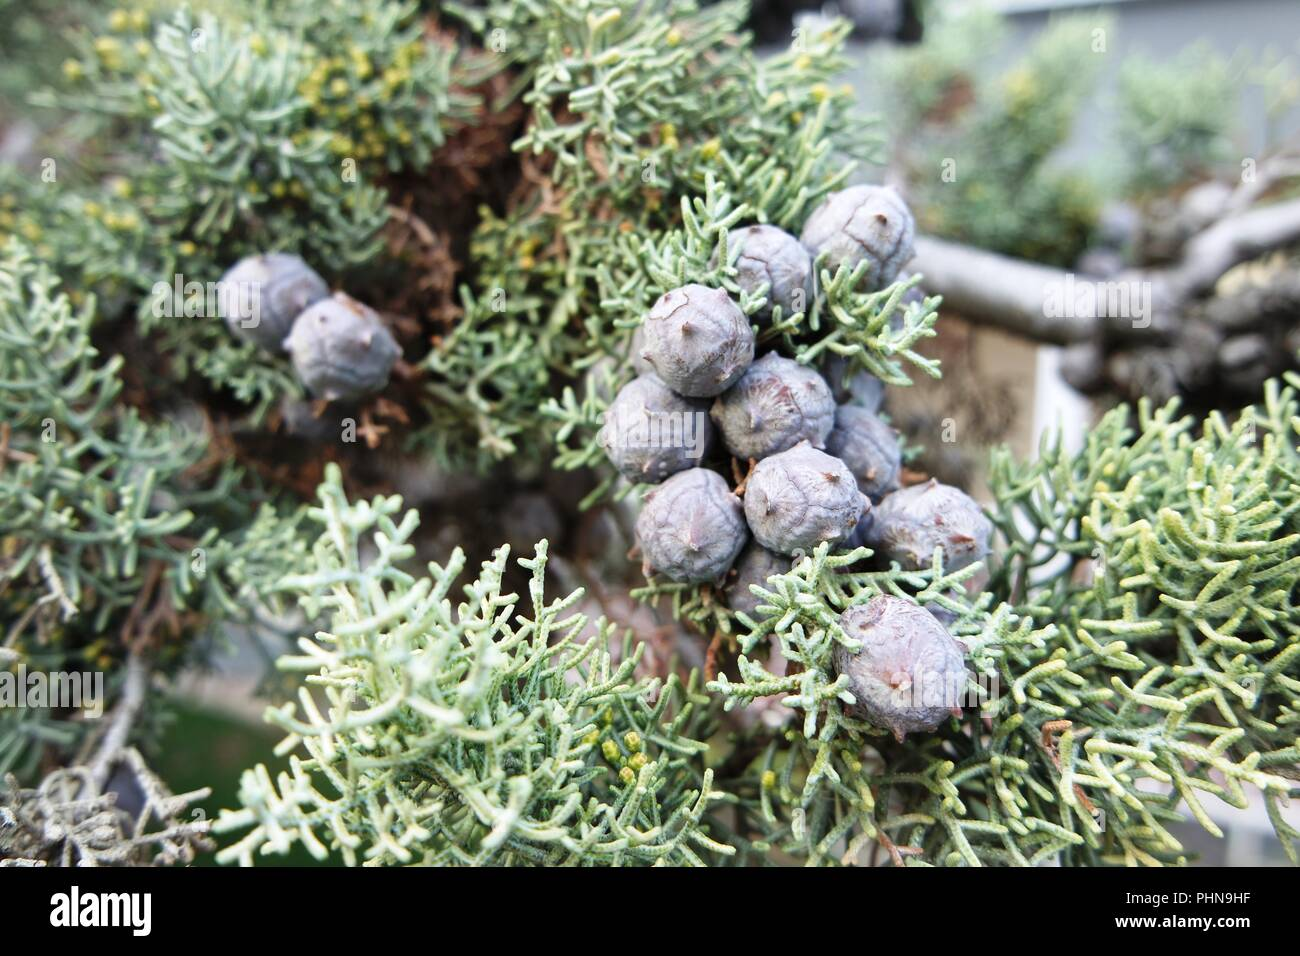 Cypress branch with cones - Stock Image